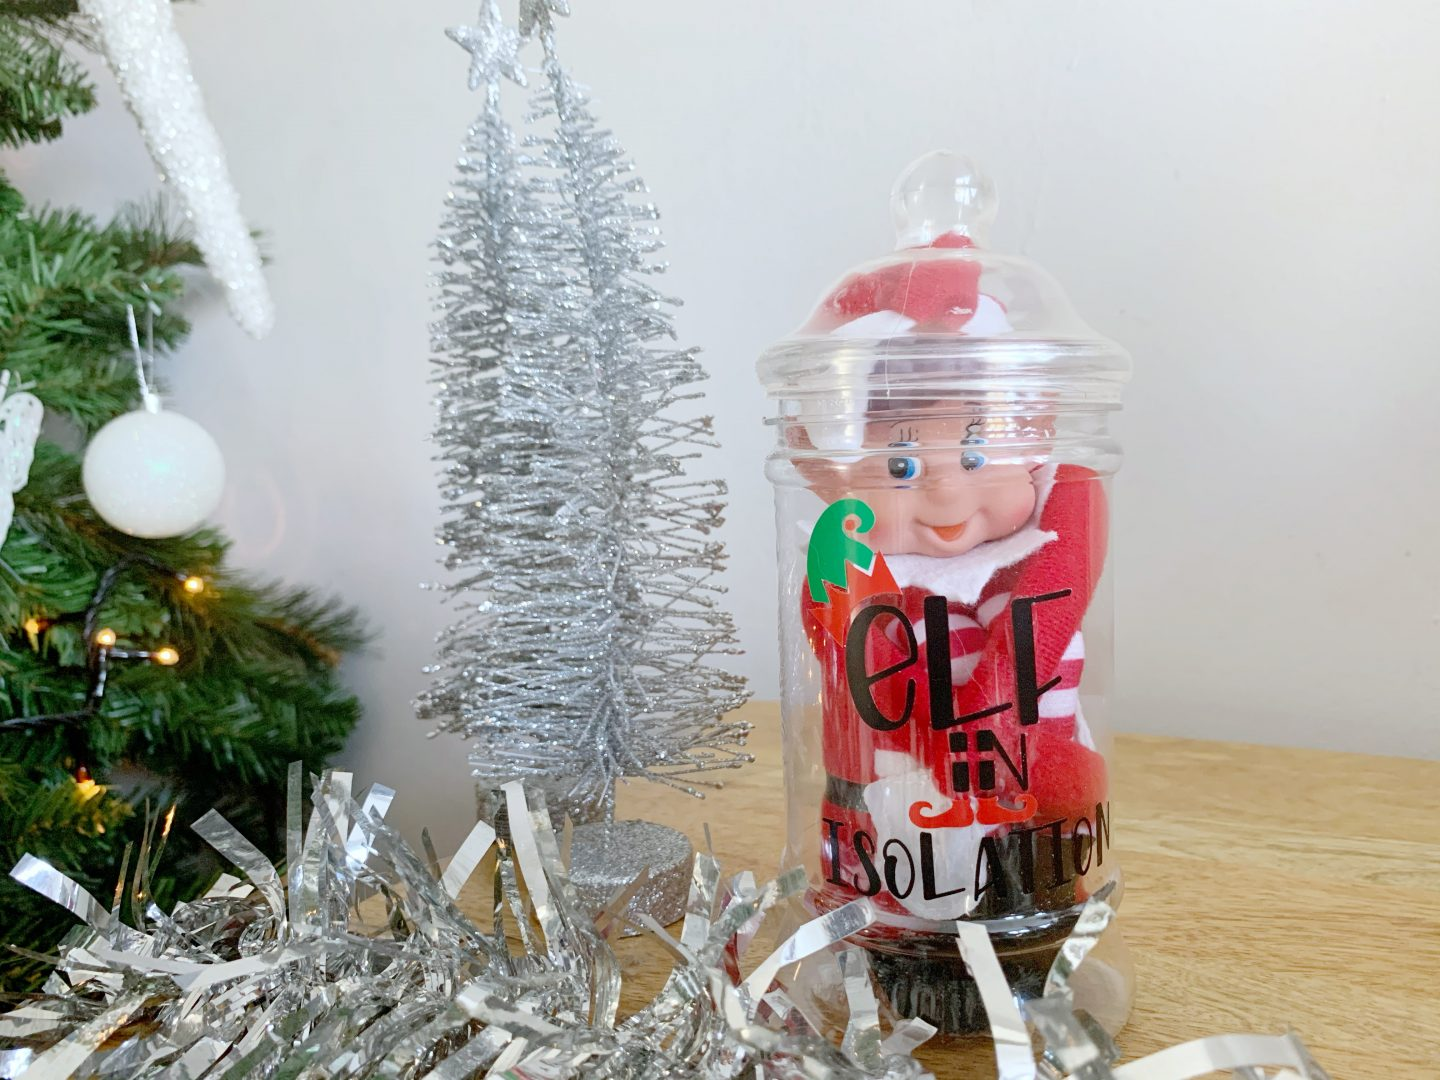 Elf on a shelf in self isolation with design bundles